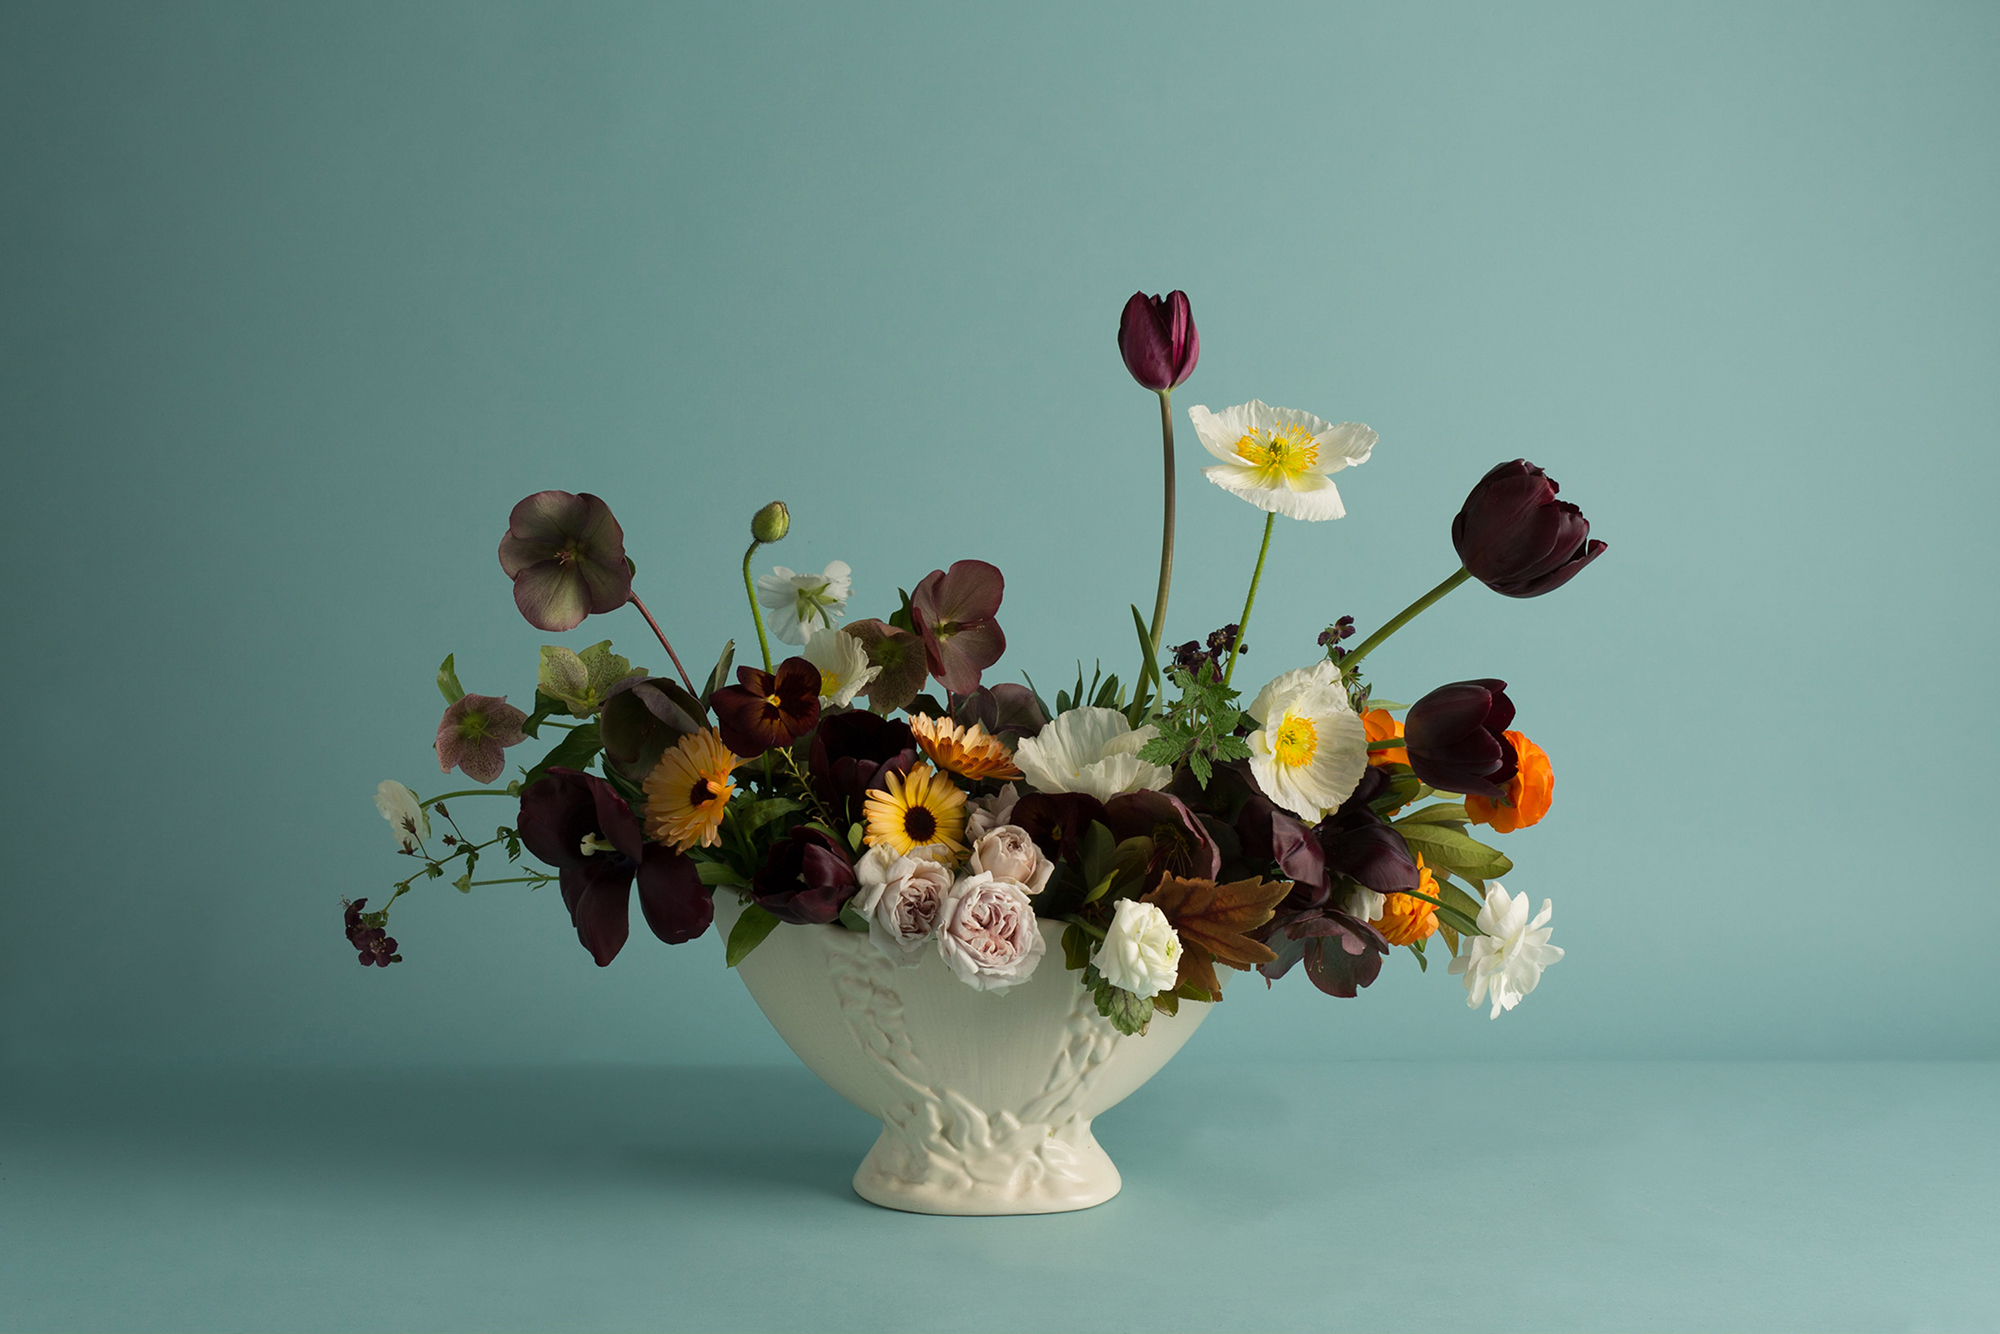 Still Life with Photographer: Claire Mossong